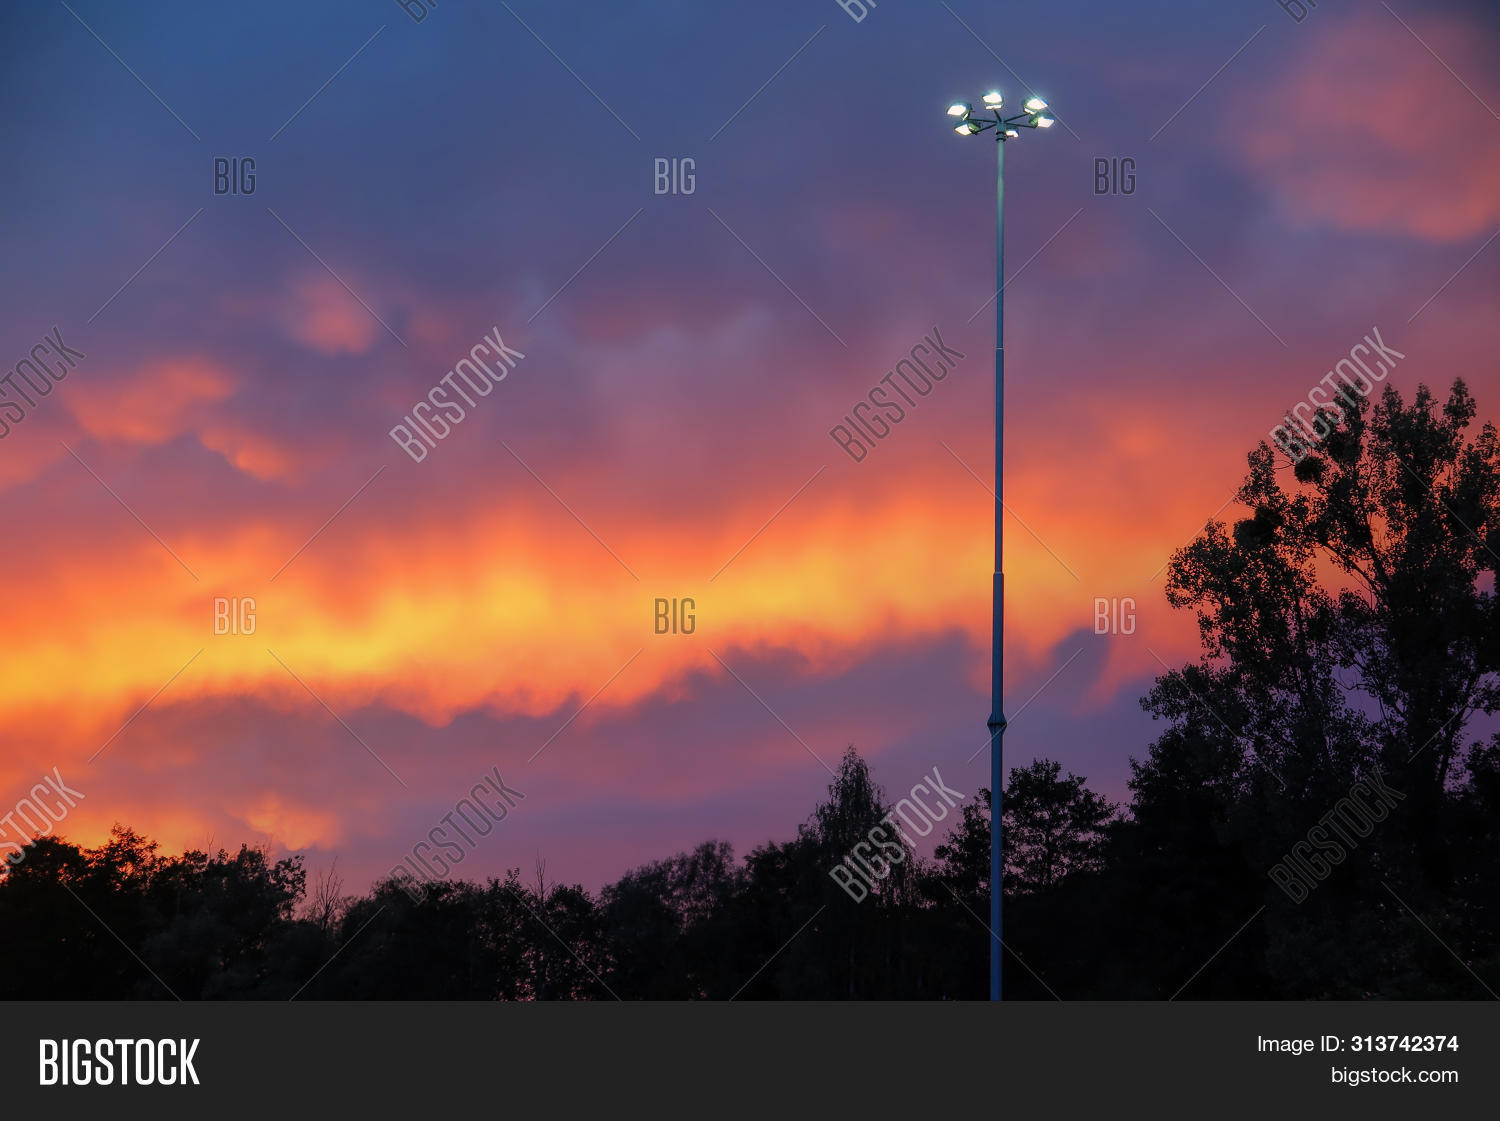 Pink Purple Sunset Image Photo Free Trial Bigstock